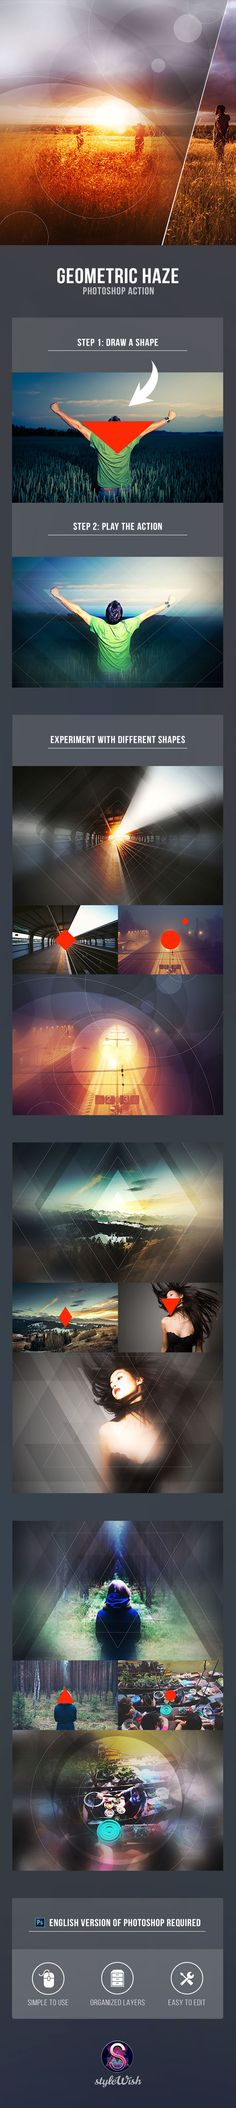 Geometric Haze Photoshop Action #photoeffect Download: http://graphicriver.net/item/geometric-haze-photoshop-action/11680962?ref=ksioks